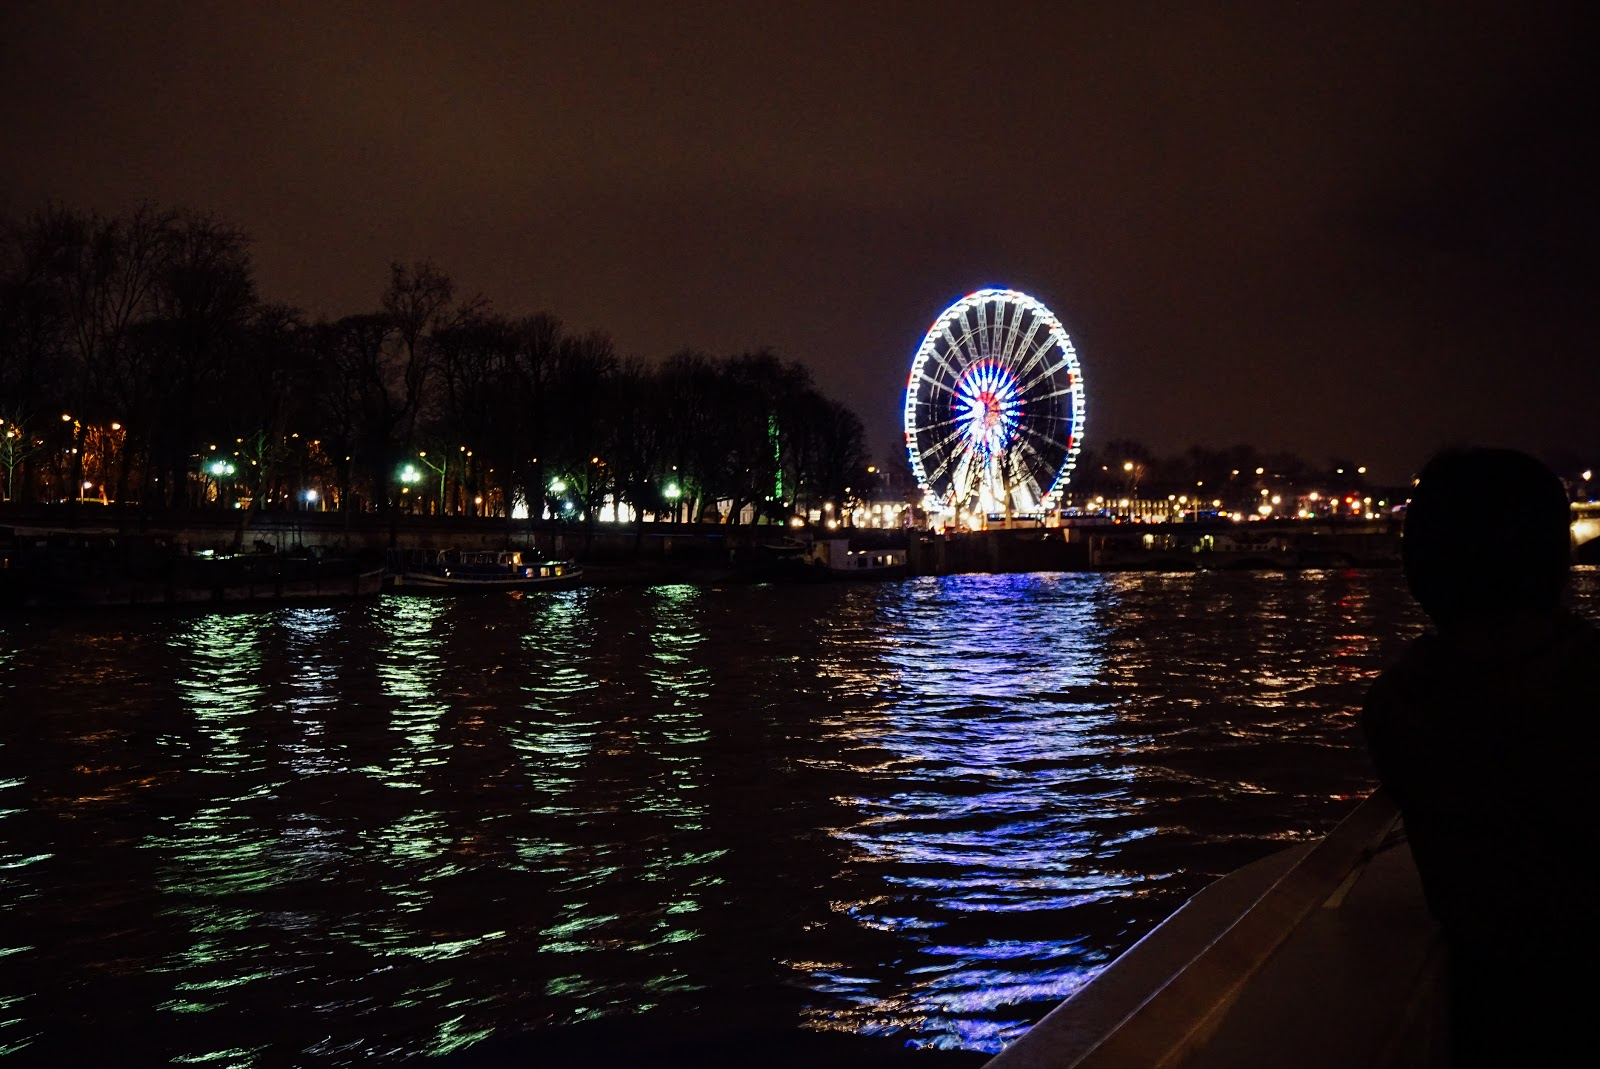 Ferris wheel on a river